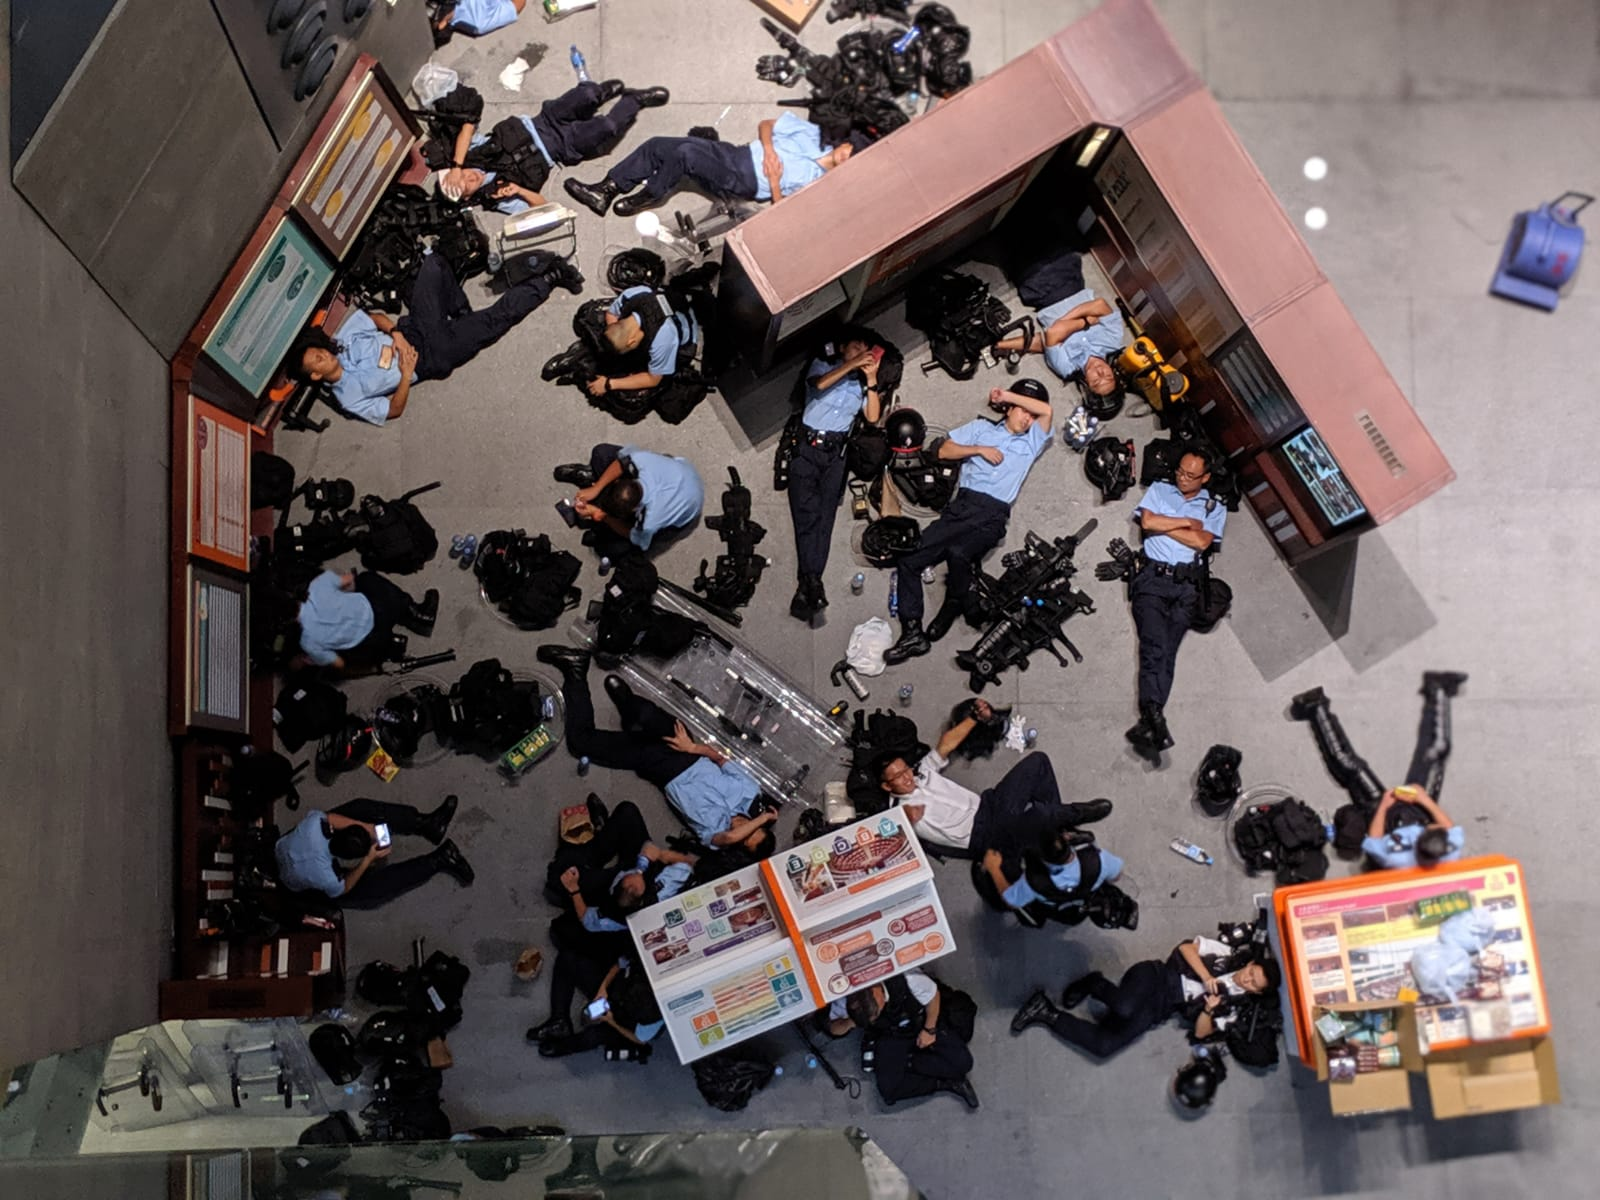 Police officers take rest in the Legislative Council building.